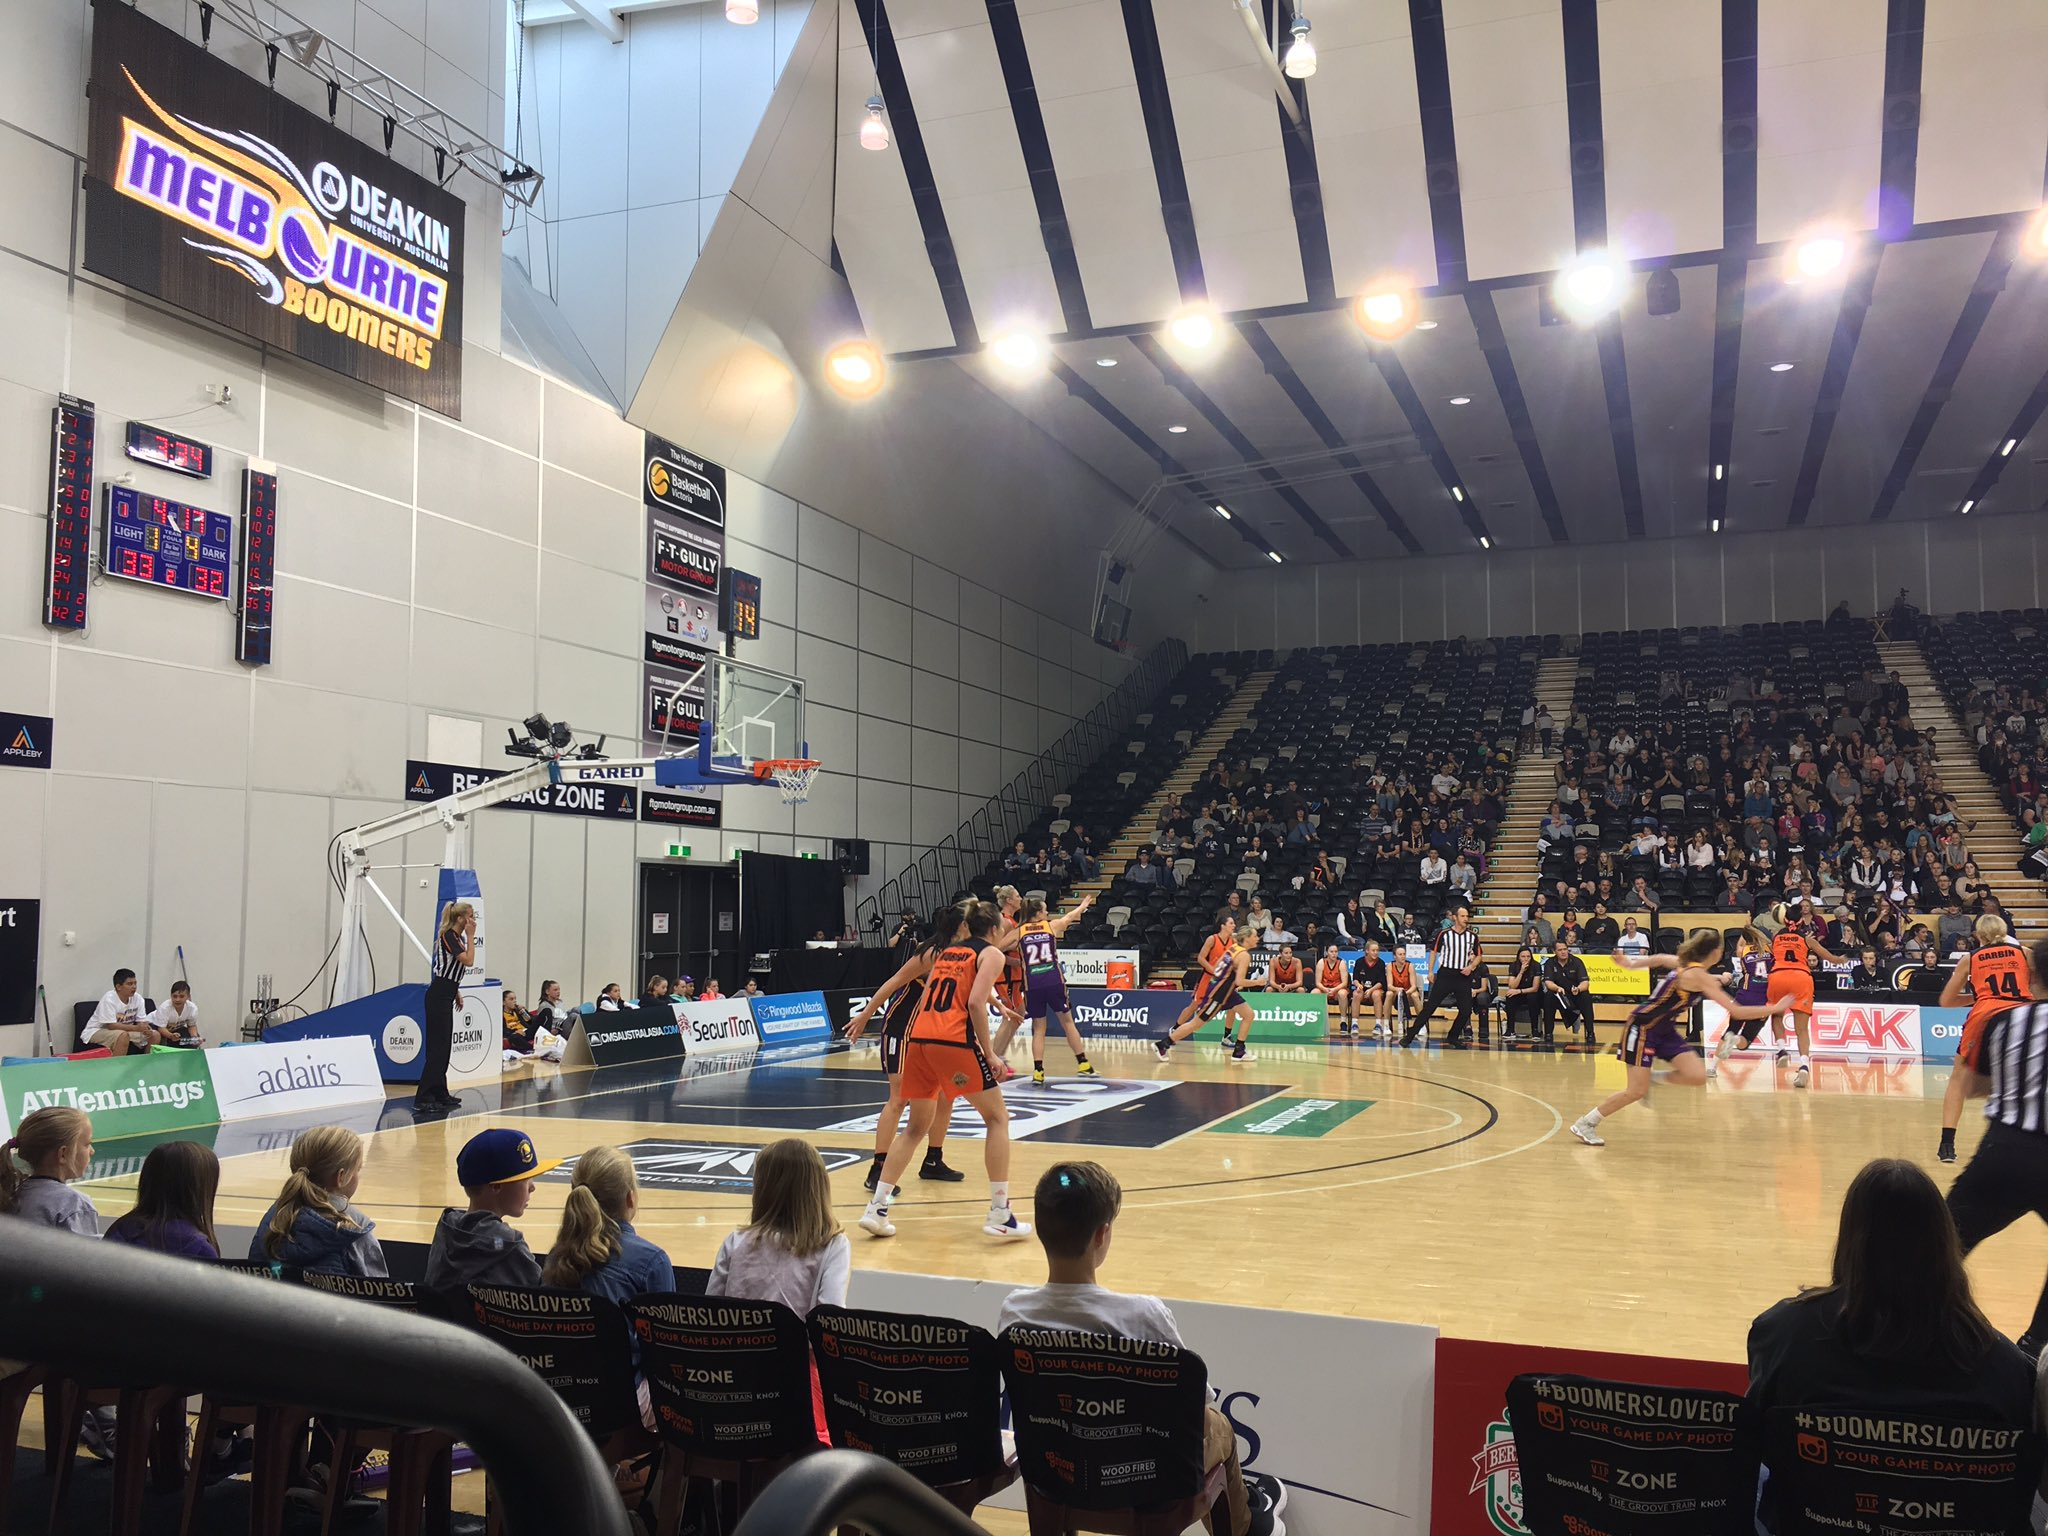 A close match here - the @Deakin @MelbourneBoomer down one point with a minute until half time, 37-38. #DeakinWISE #WomenInSport https://t.co/kxFld4dc9Q